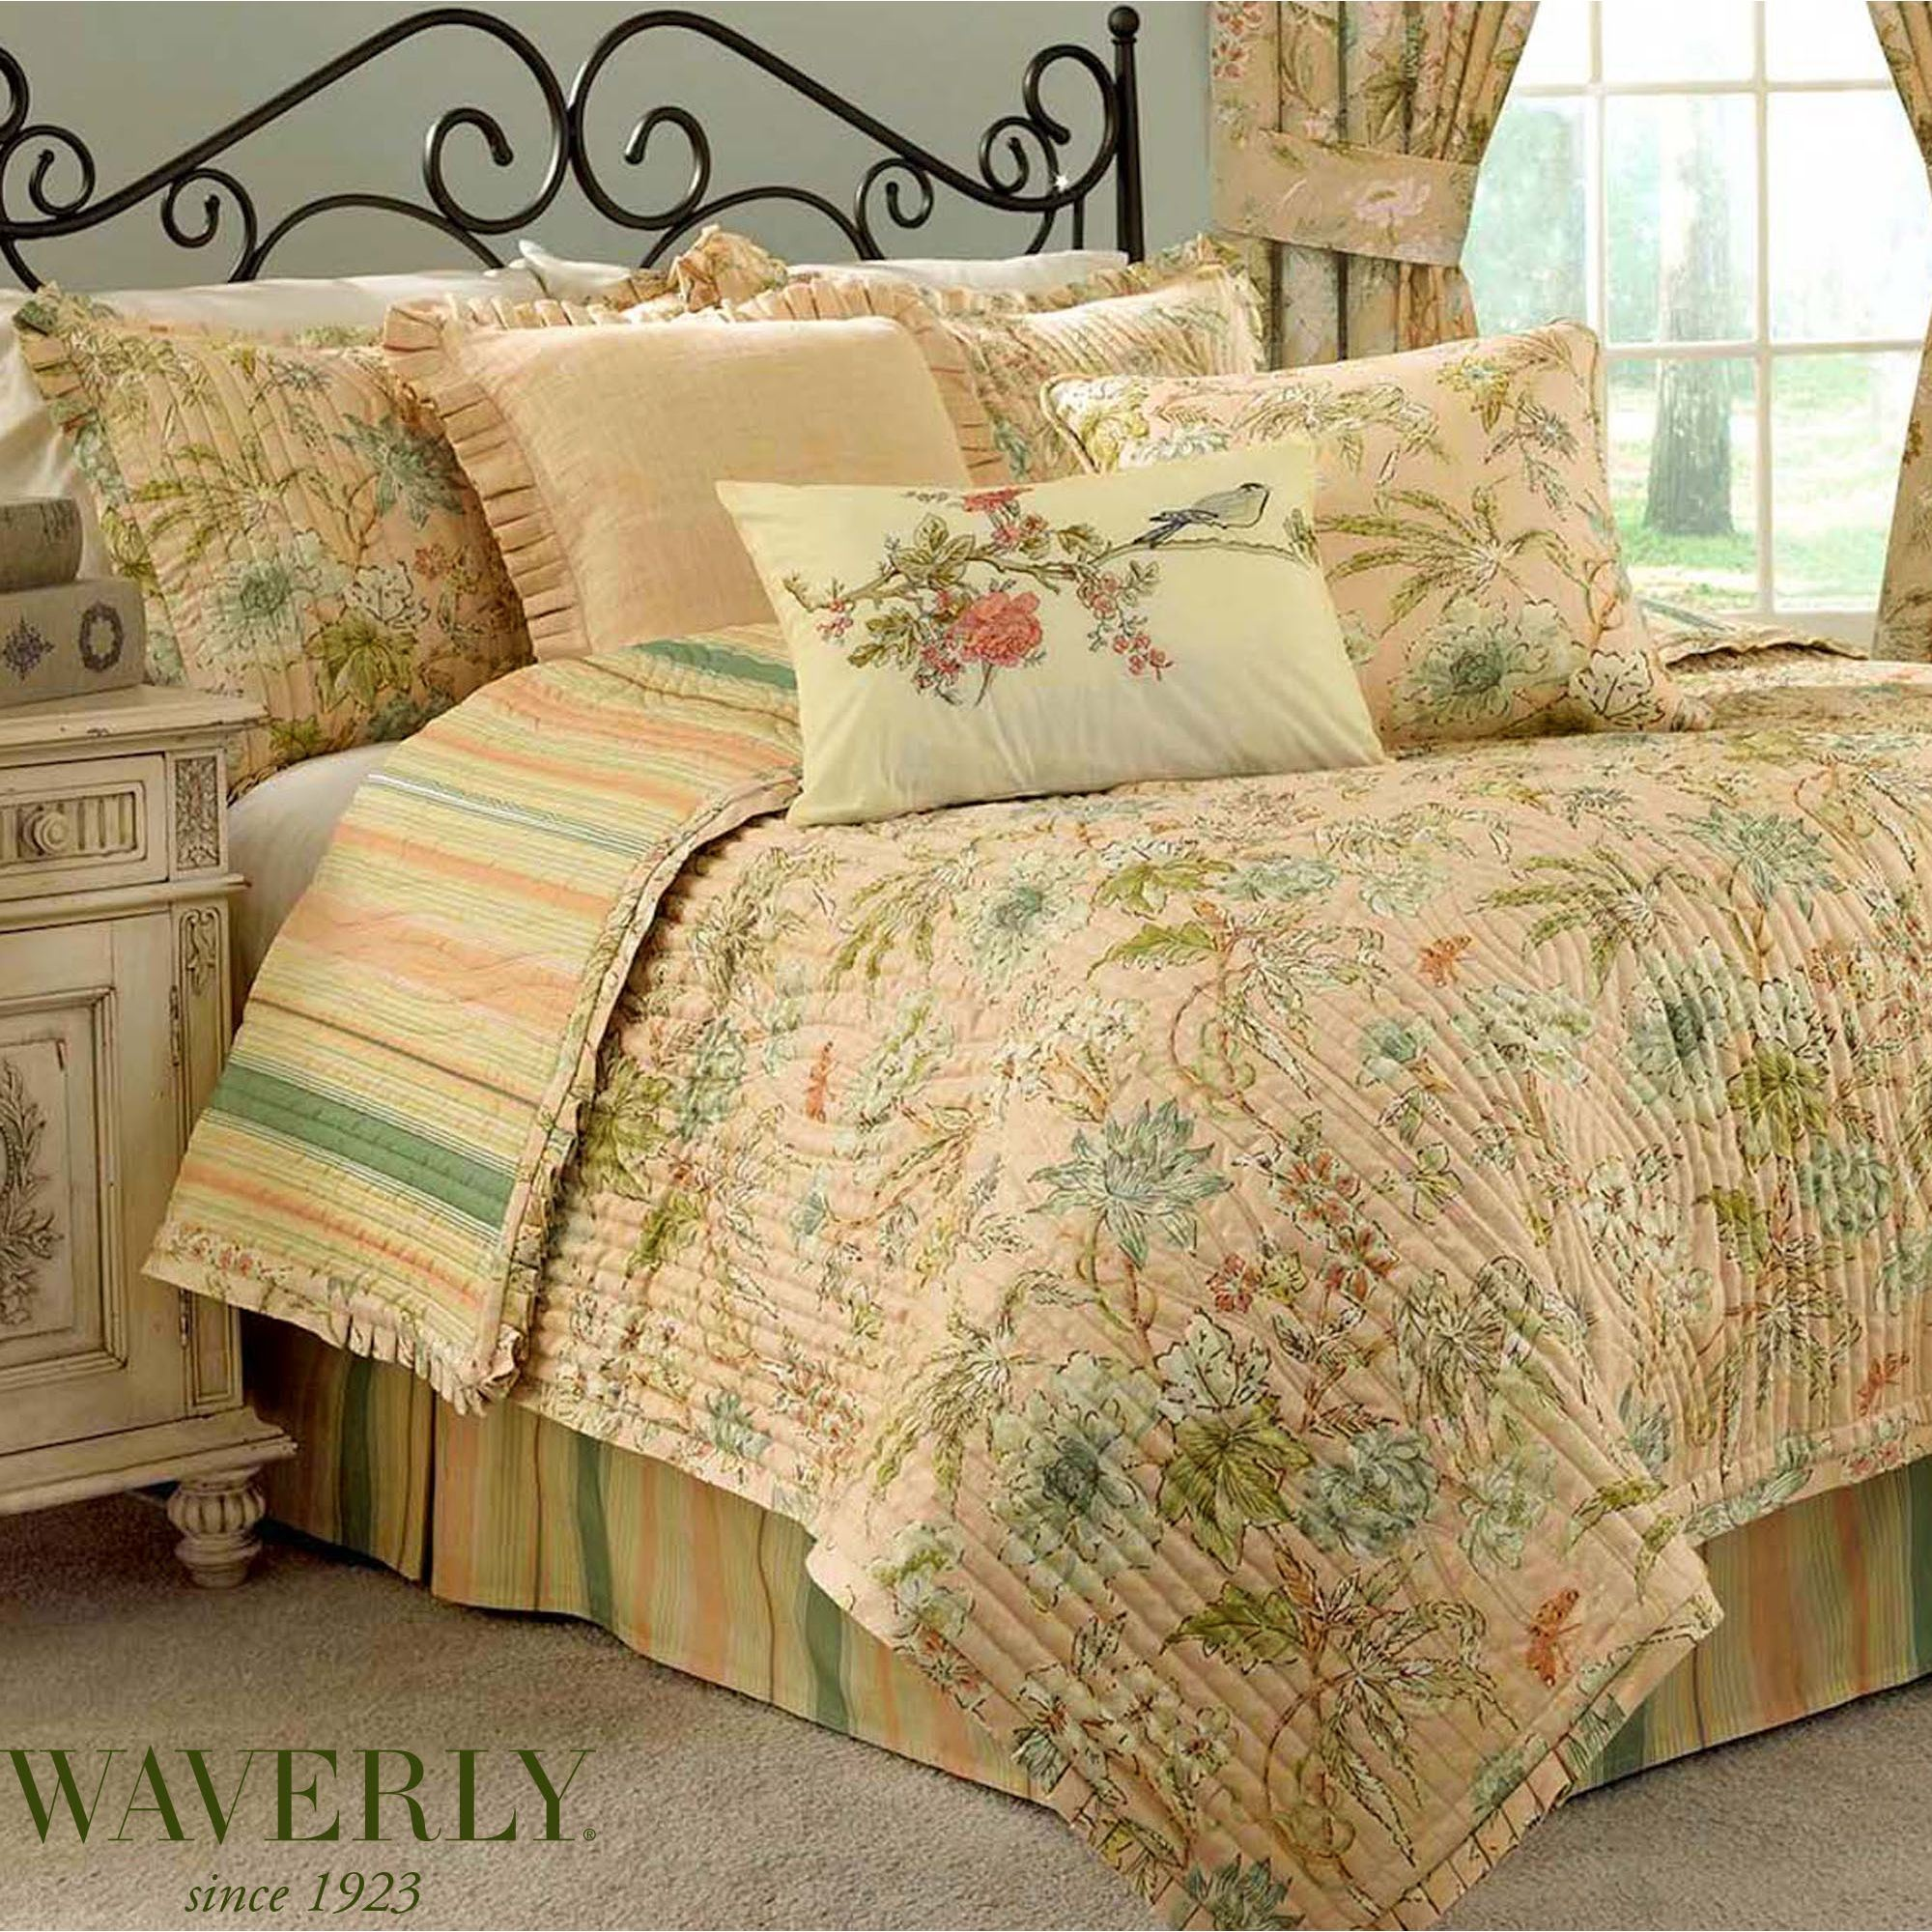 bedding piece imperial brick quilts set comforter quilt dress sets waverly king bedspreads